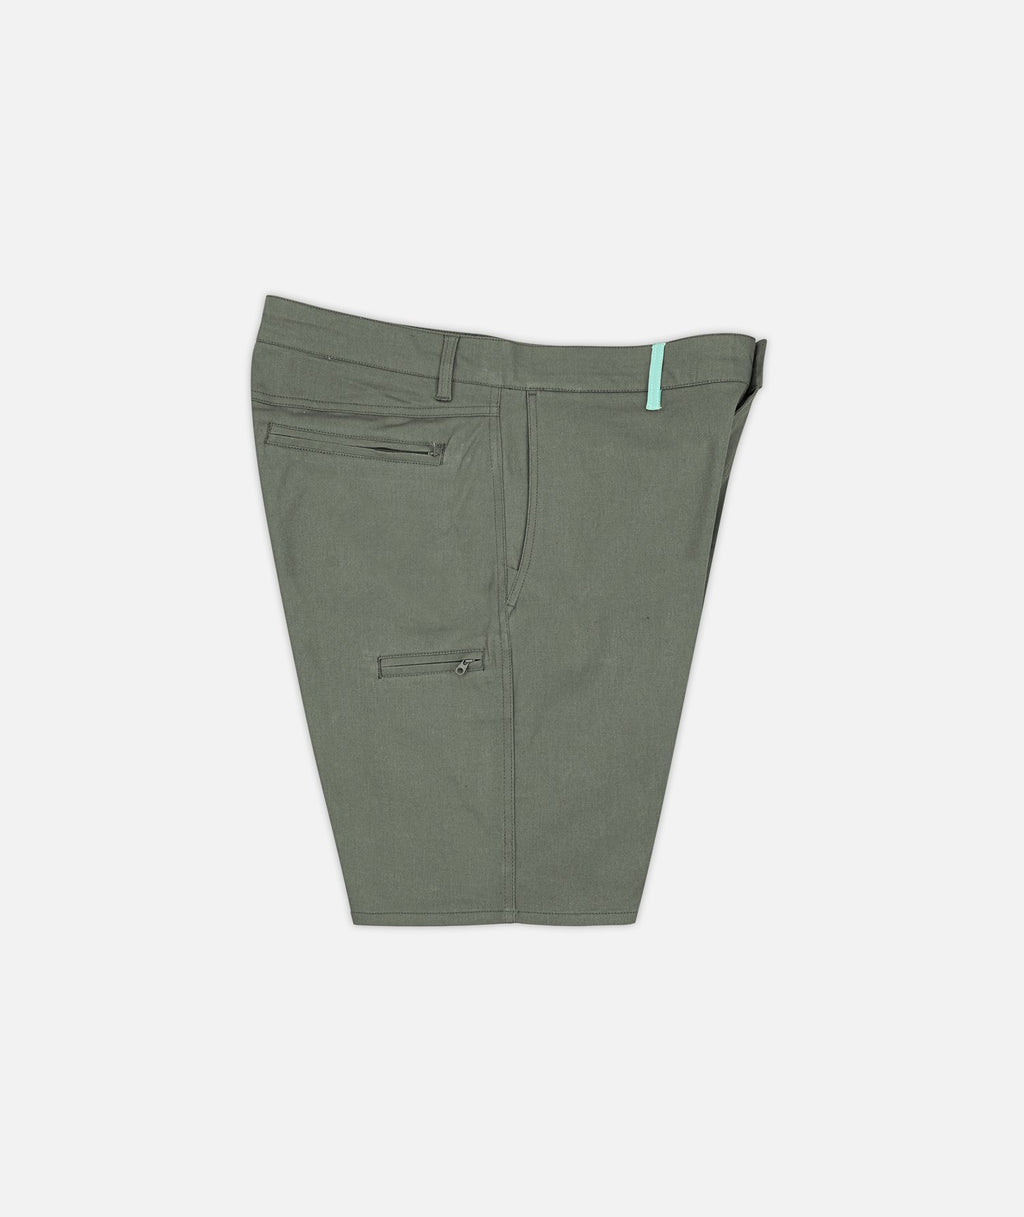 JETTY STROLL CHINO WALKSHORT